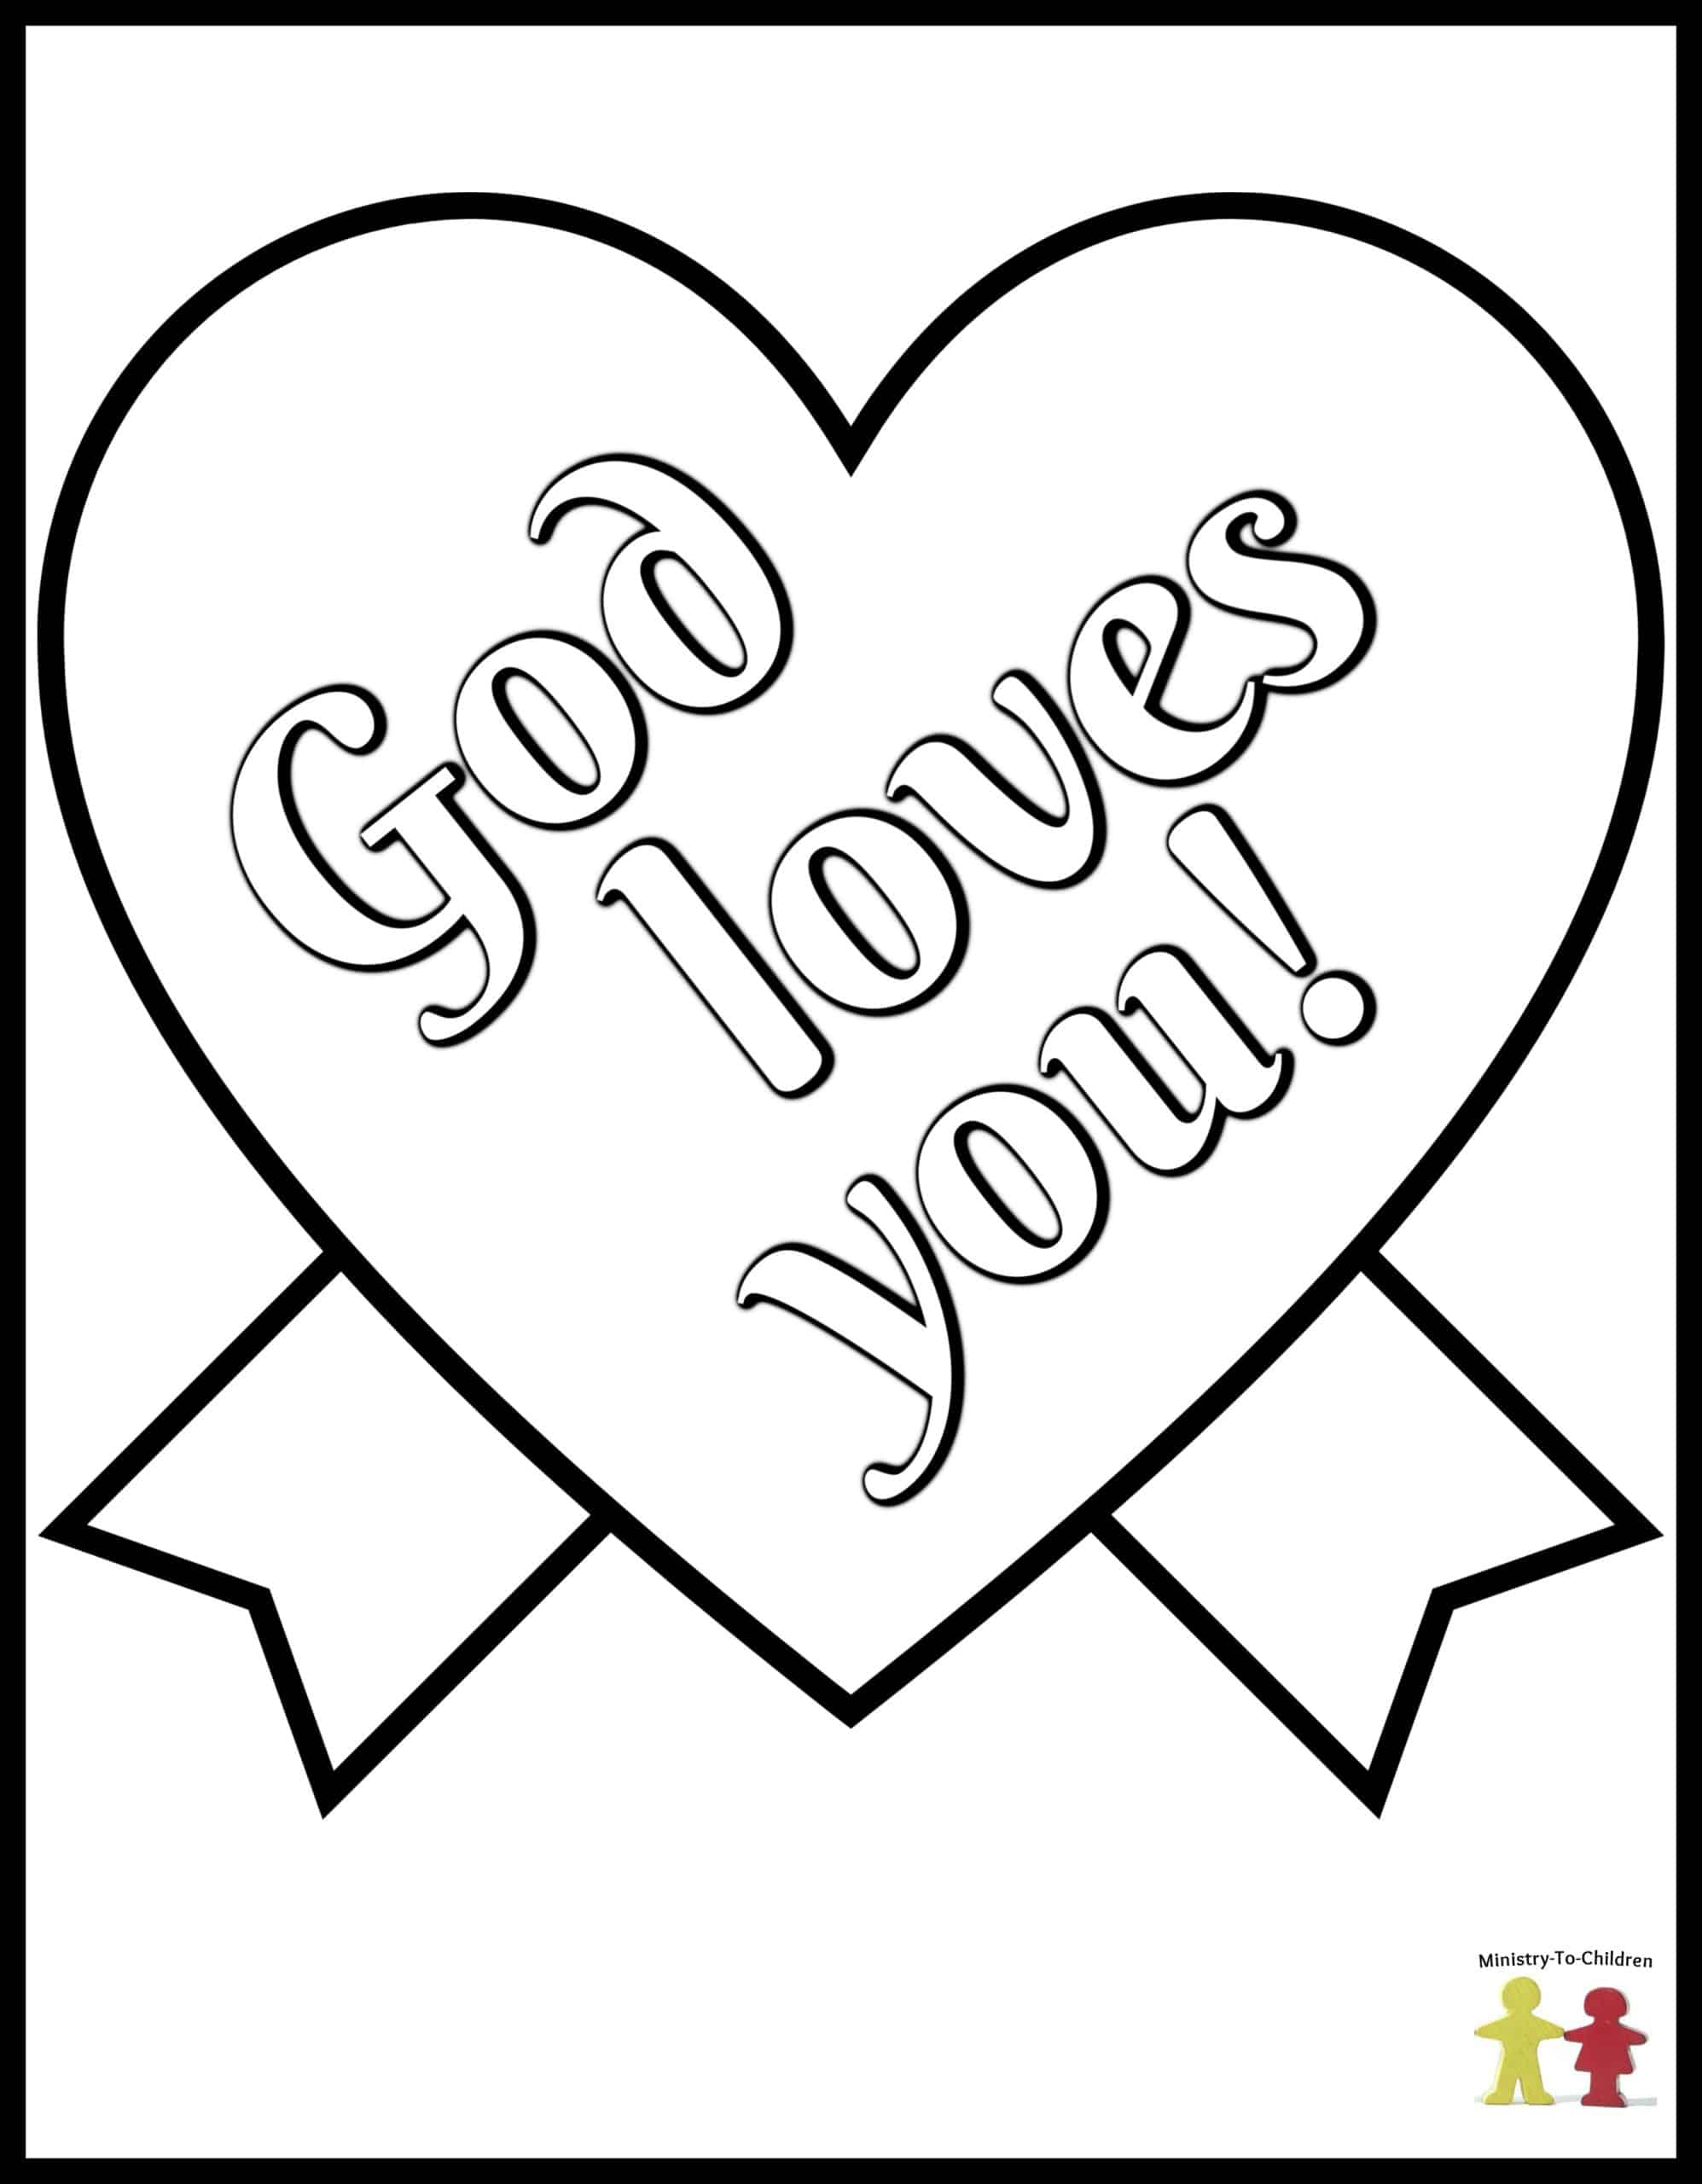 coloring picture love love coloring poster illustrated children39s ministry picture coloring love